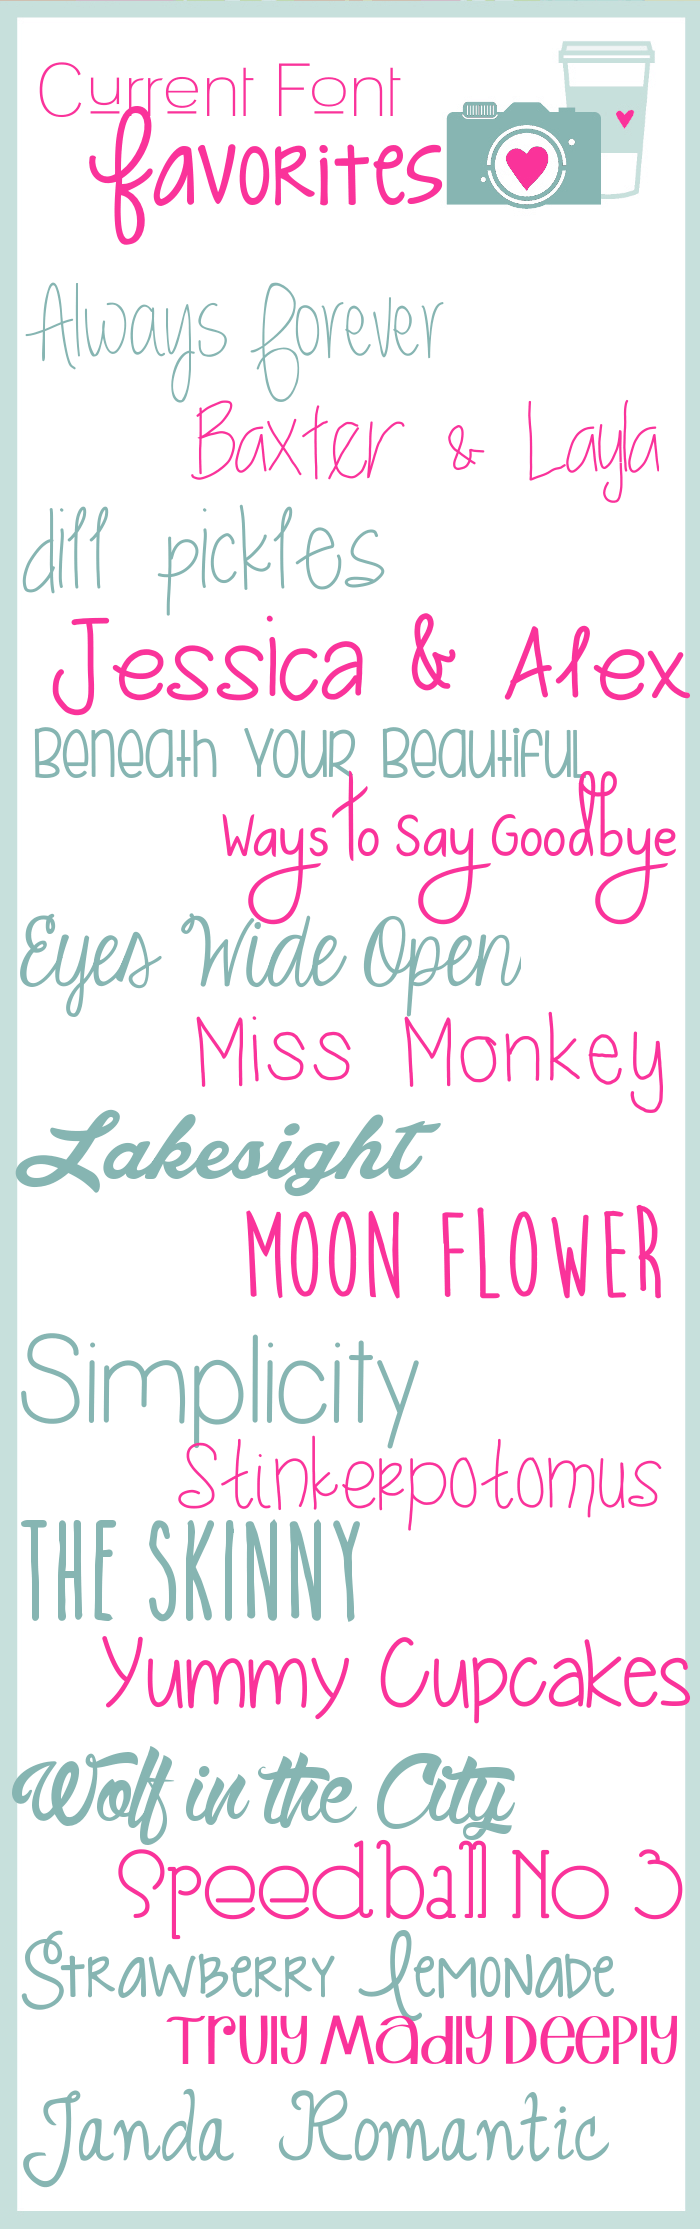 current font favorites